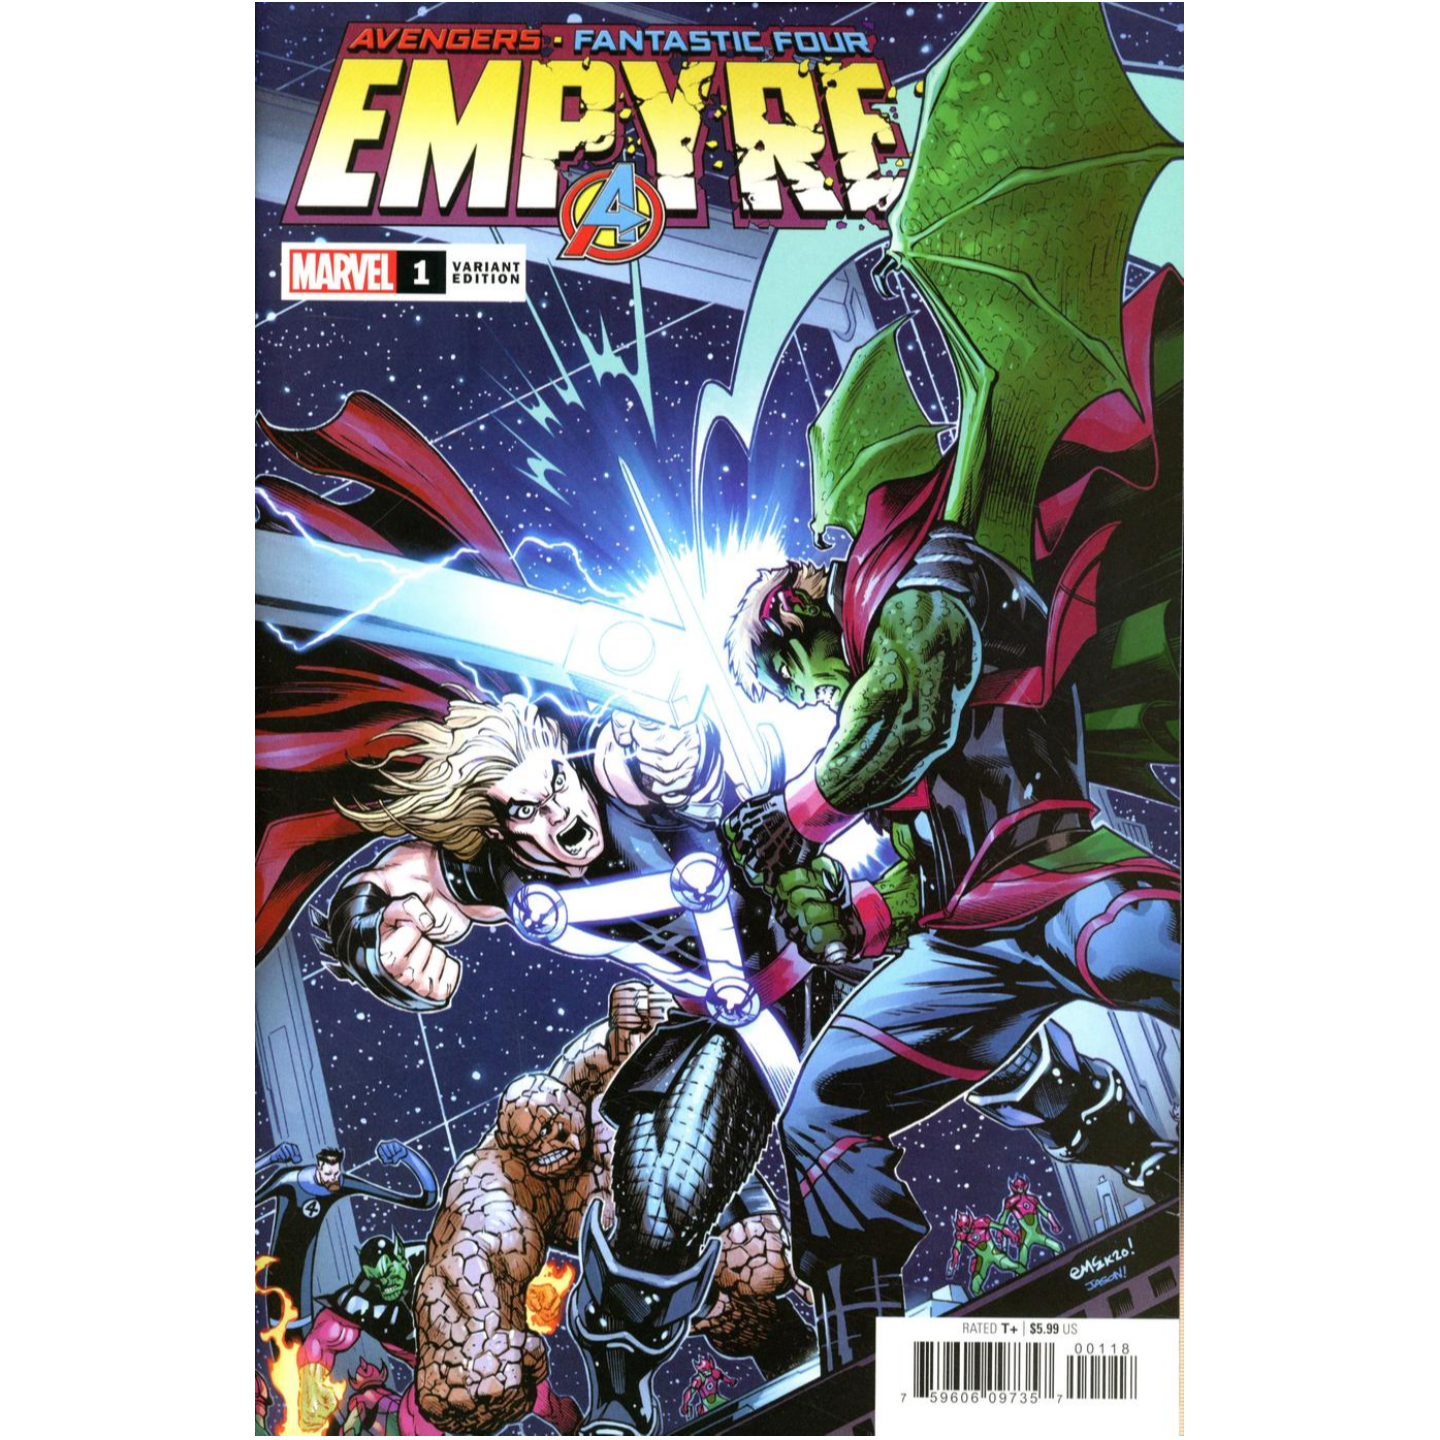 EMPYRE #1 (OF 6) LAUNCH VARIANT